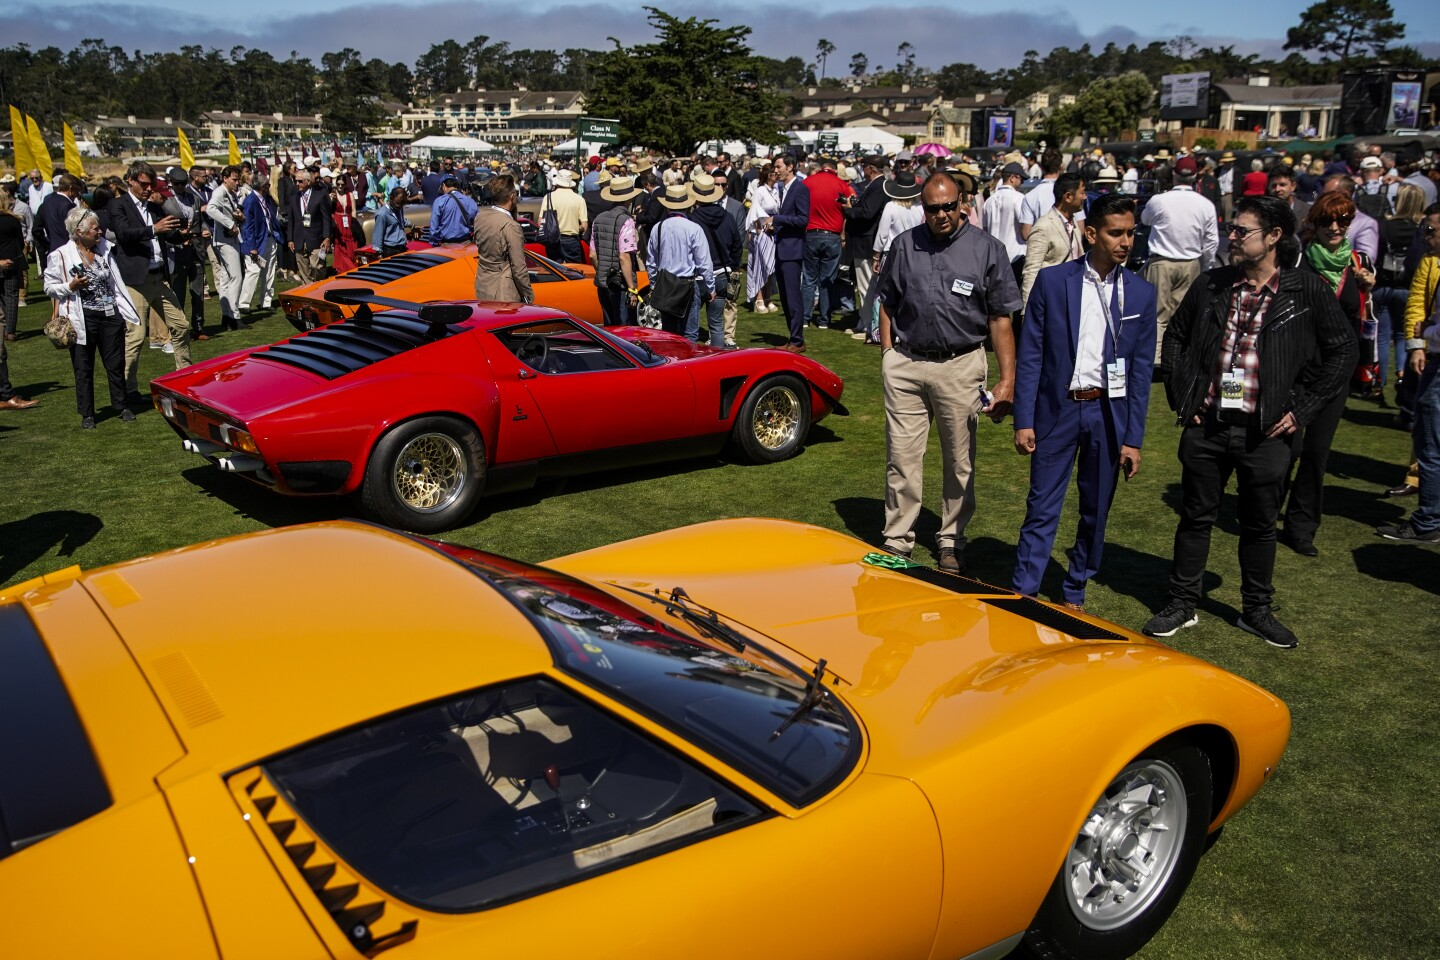 PEBBLE BEACH, CALIF. - AUGUST 18: Concours d'Elegance attendees walk among the cars in the Class N, Lamborghini Miura cars at the 69th Pebble Beach Concours d'Elegance at the Pebble Beach golf course on Sunday, Aug. 18, 2019 in Pebble Beach, Calif. (Kent Nishimura / Los Angeles Times)